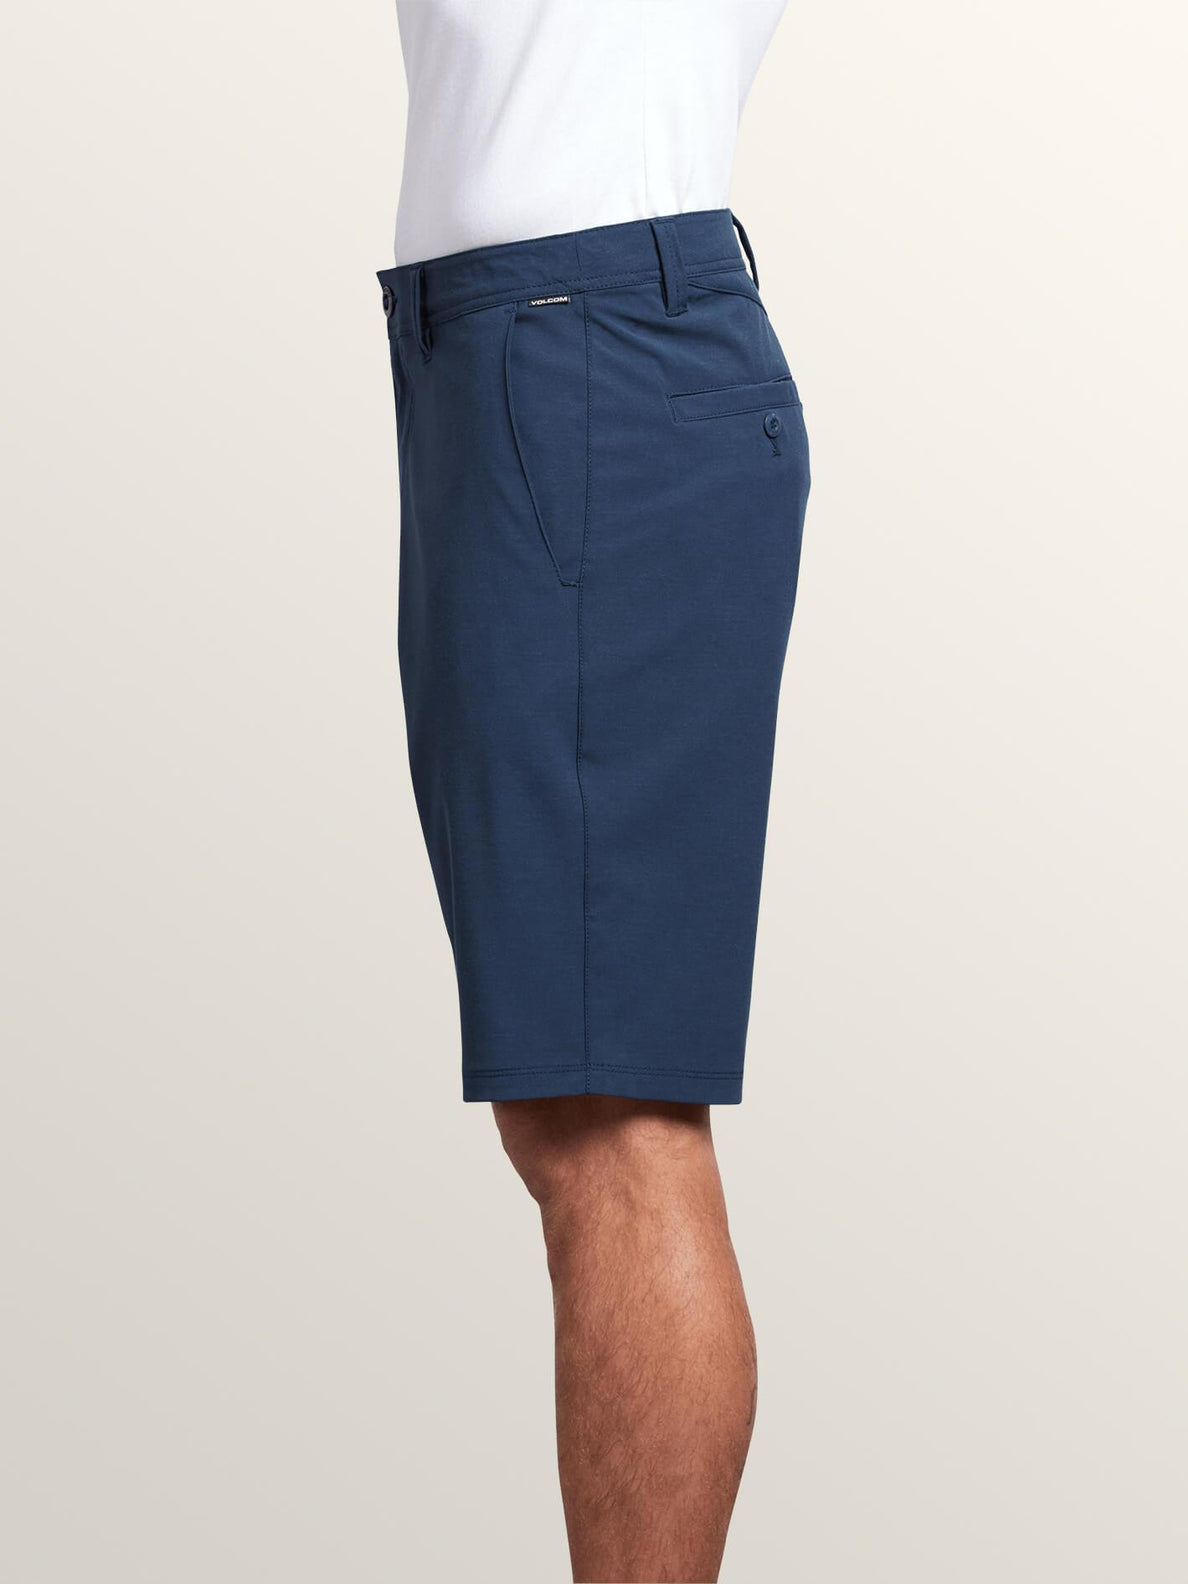 Frickin Surf N' Turf Static Hybrid Shorts In Navy, Alternate View